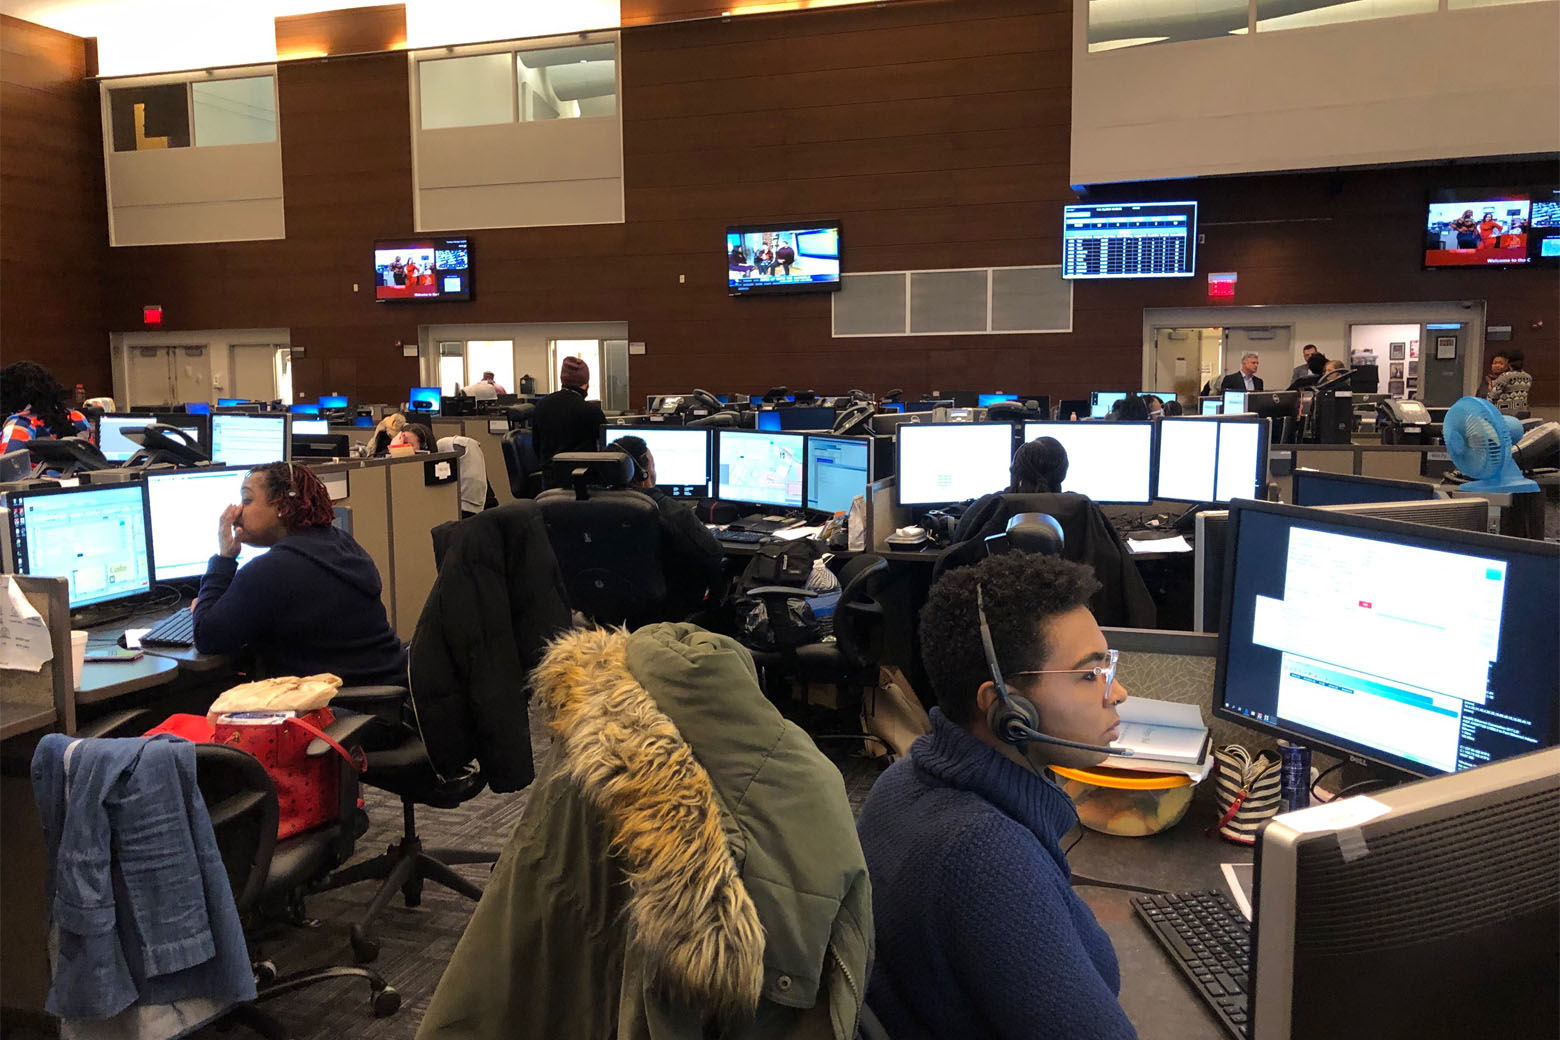 Inside the D.C. Office of Unified Communications, which installed the RapidSOS system in recent months. (WTOP/Kristi King)